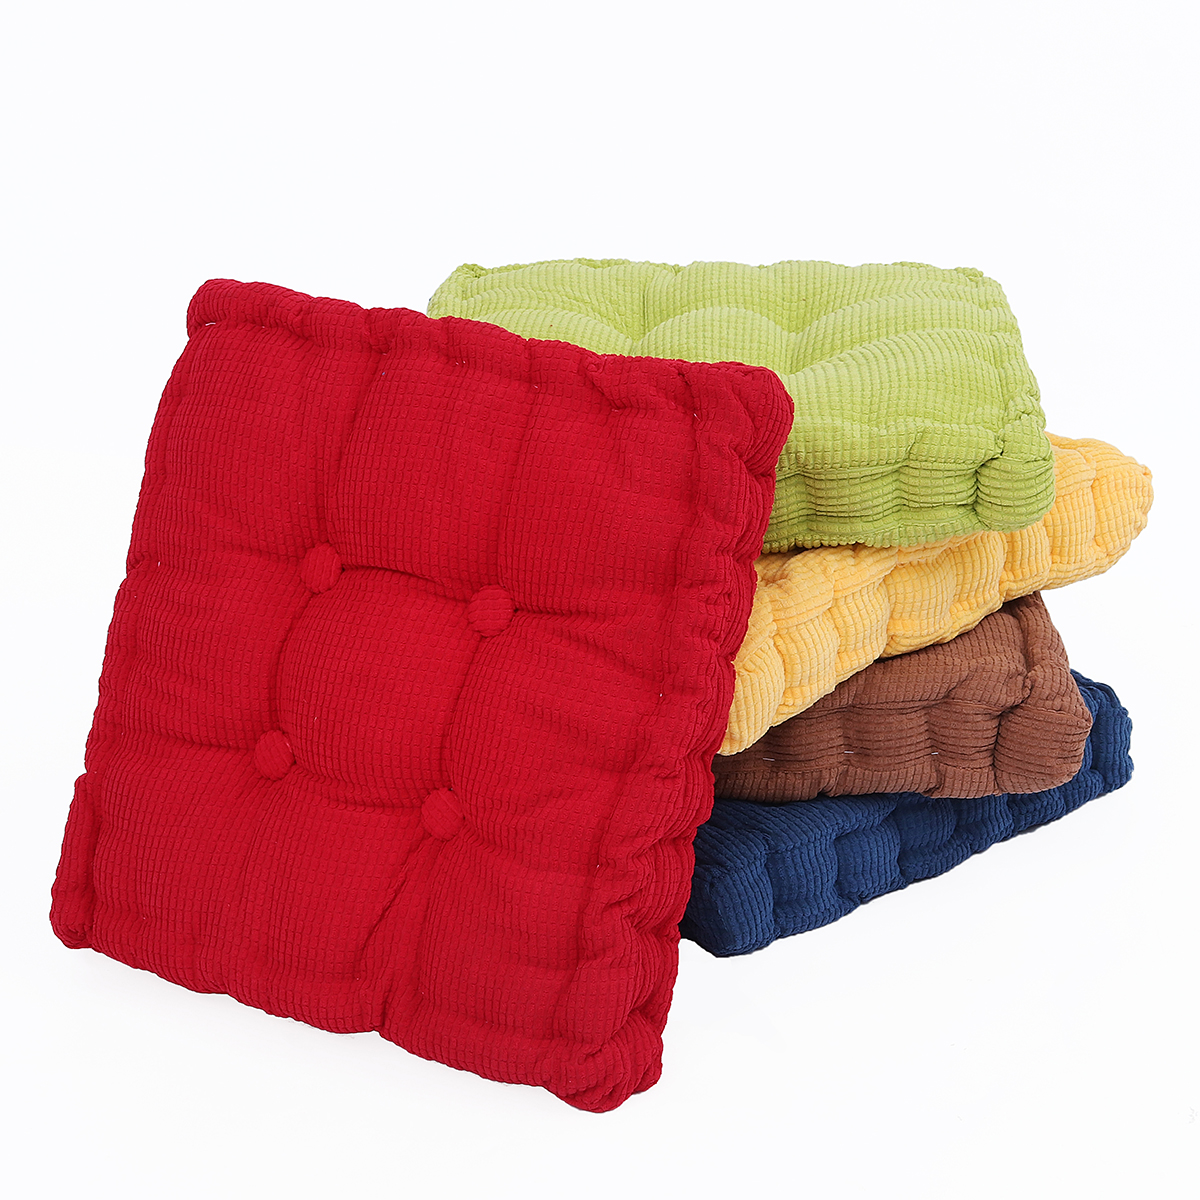 Square Corduroy Chair Pad Cushion Thicker Patio Car Office Seat Sofa Tatami Floor Mat